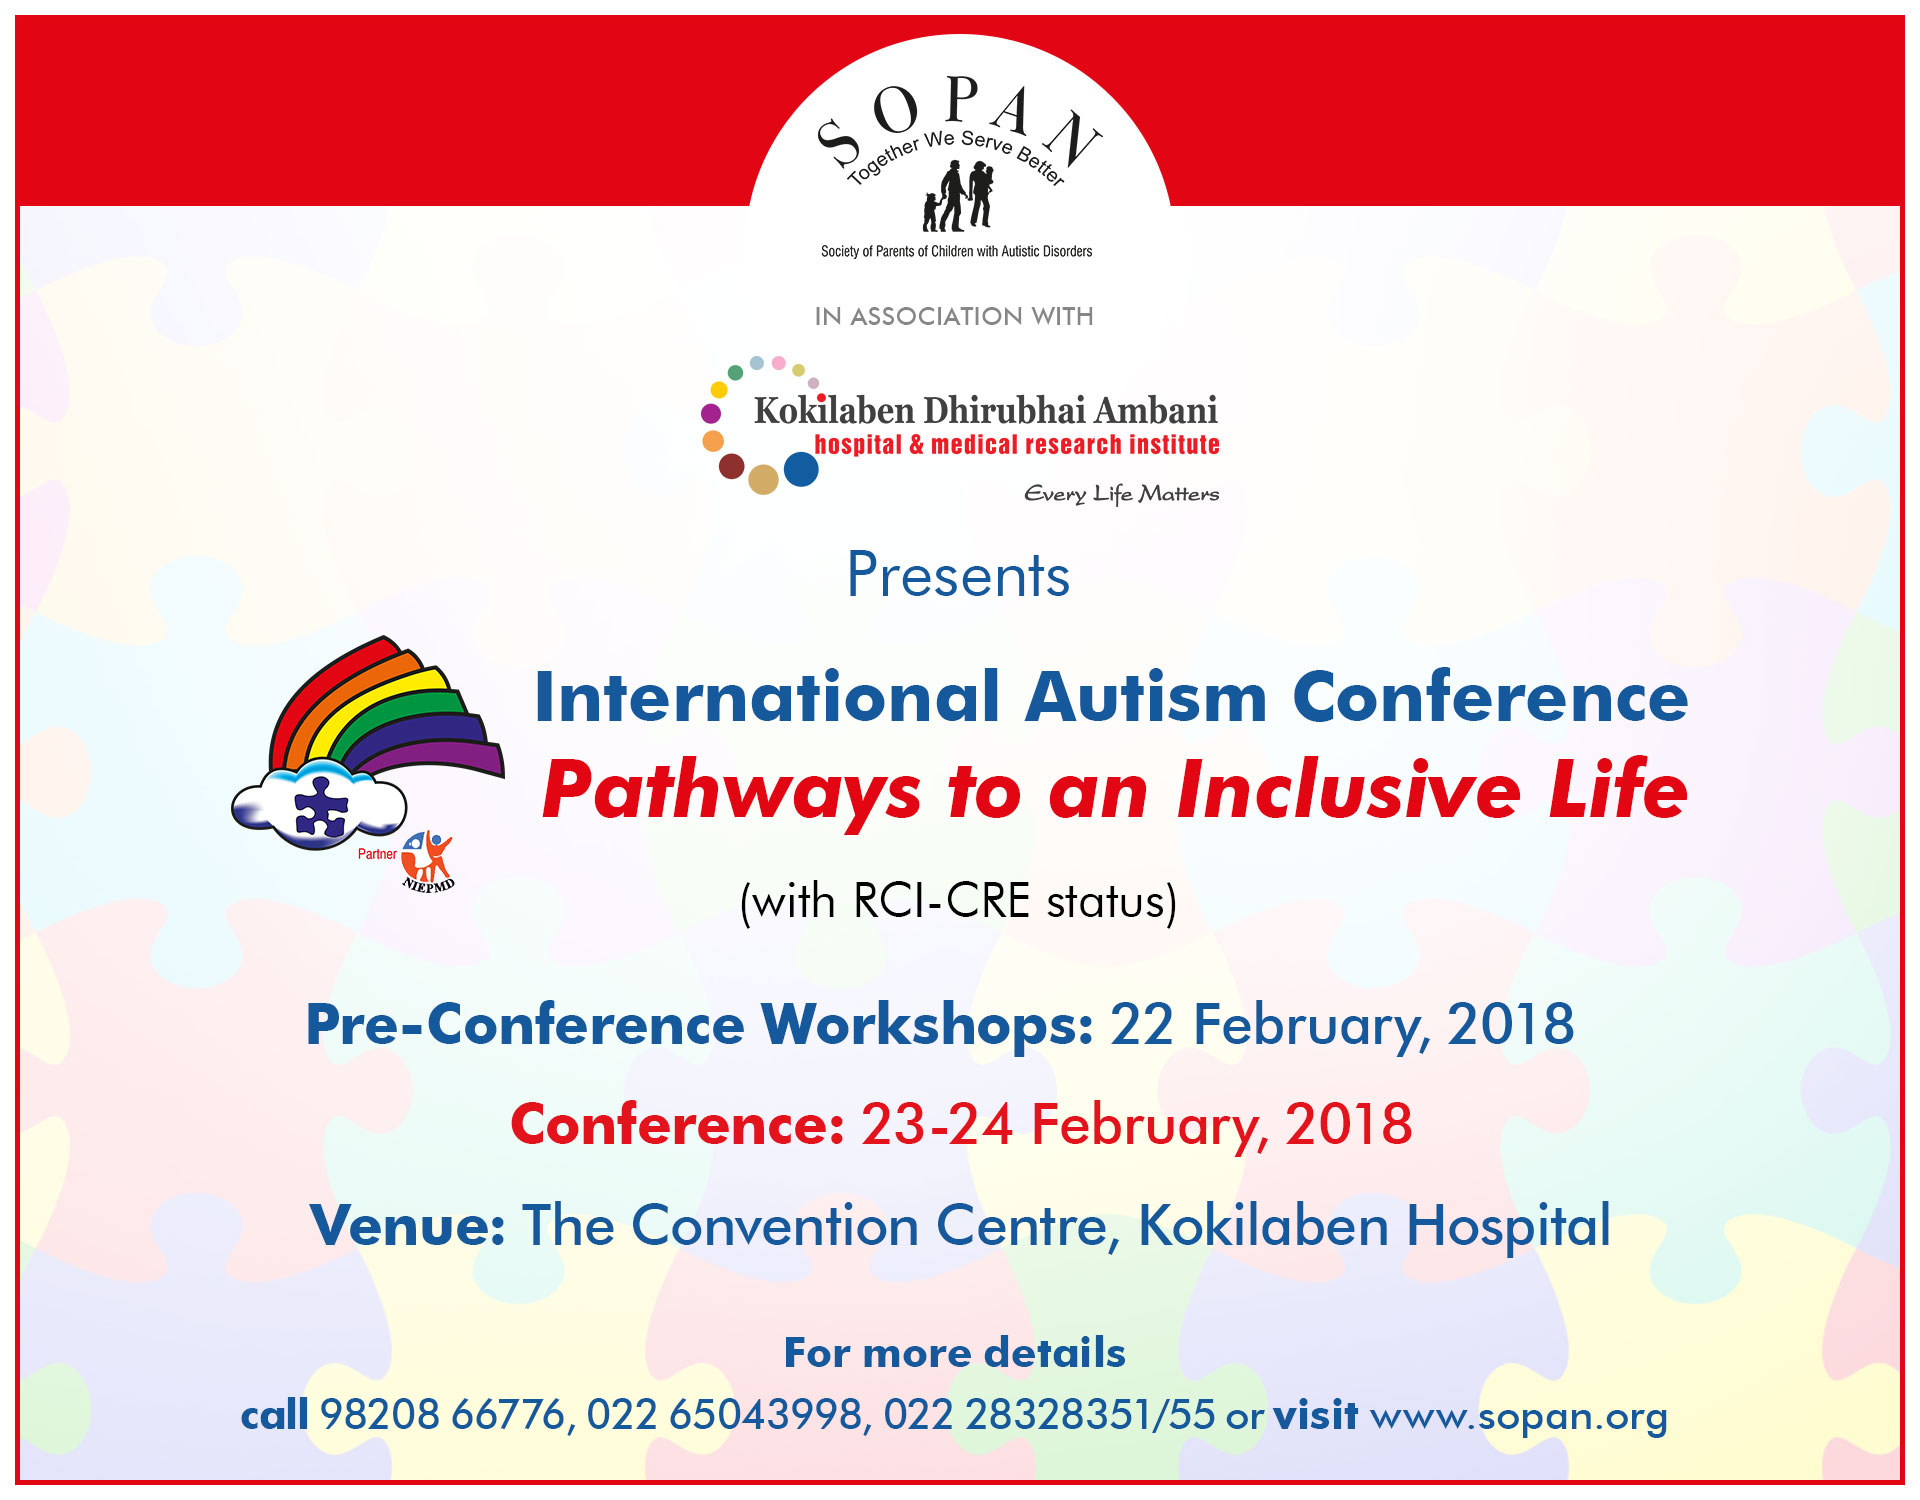 Kokilaben Dhirubhai Ambani Hospital - International Autism Conference